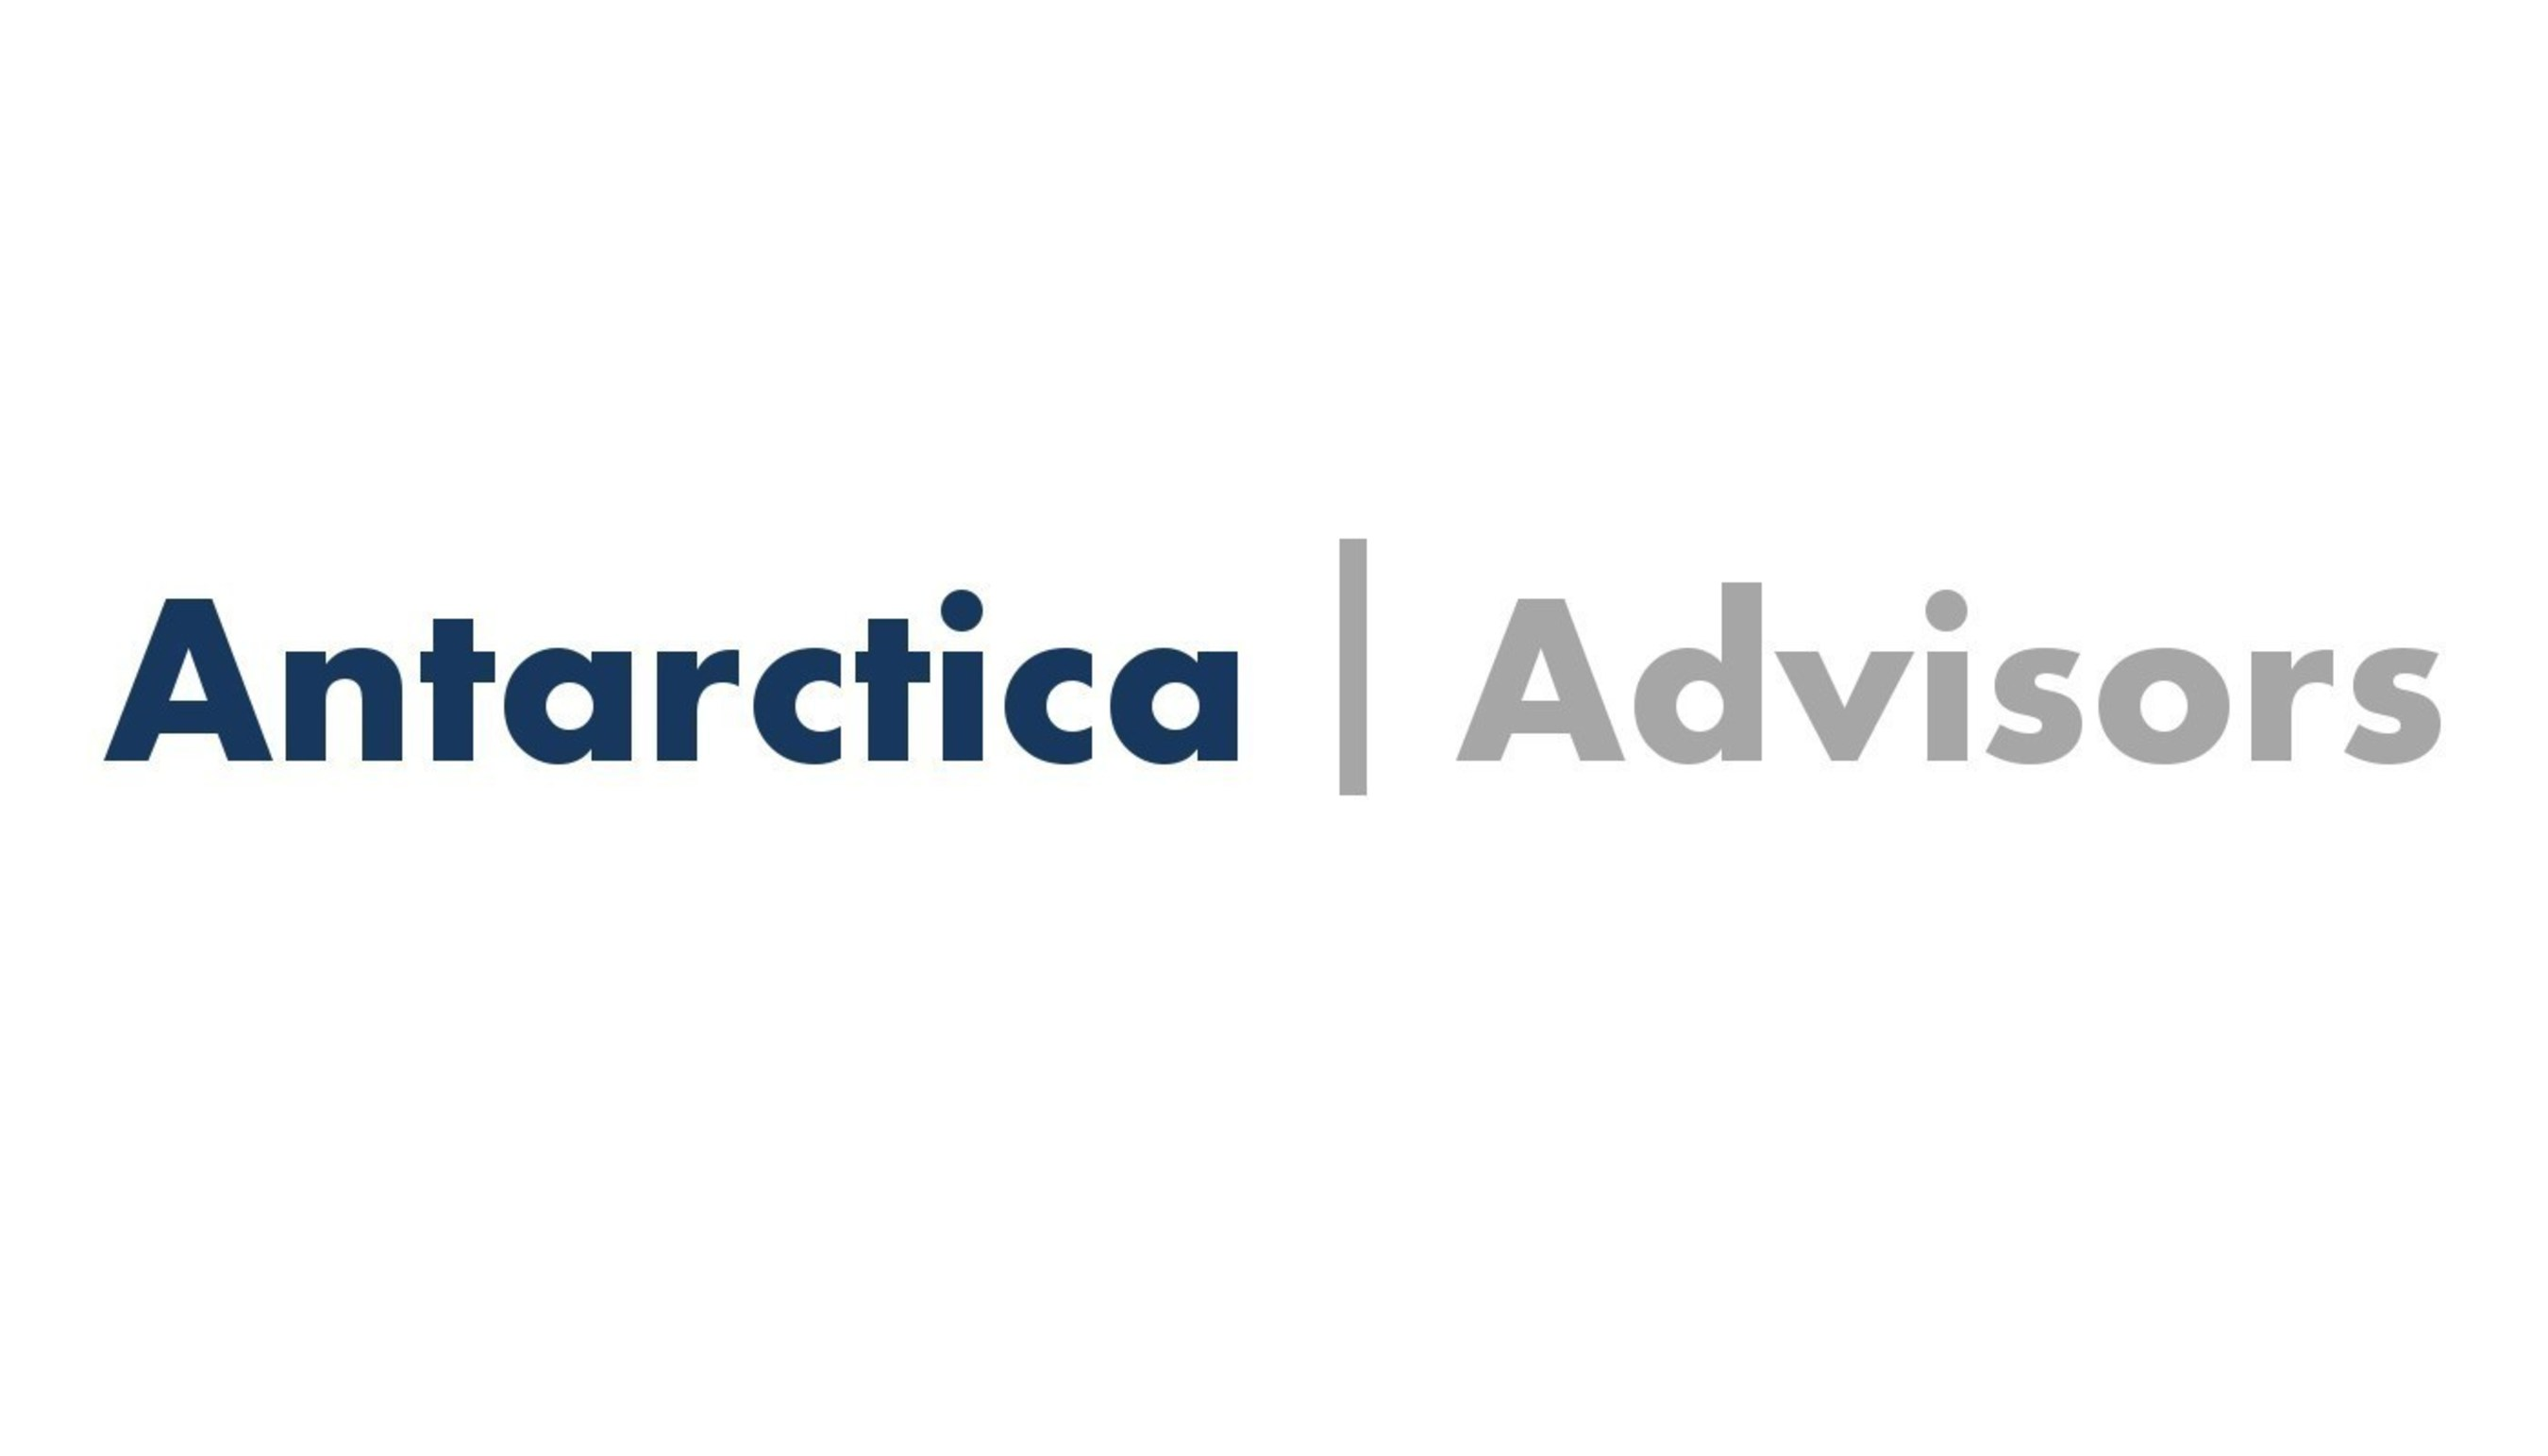 Antarctica Advisors International Announces Opening of its Representative Office in Chile